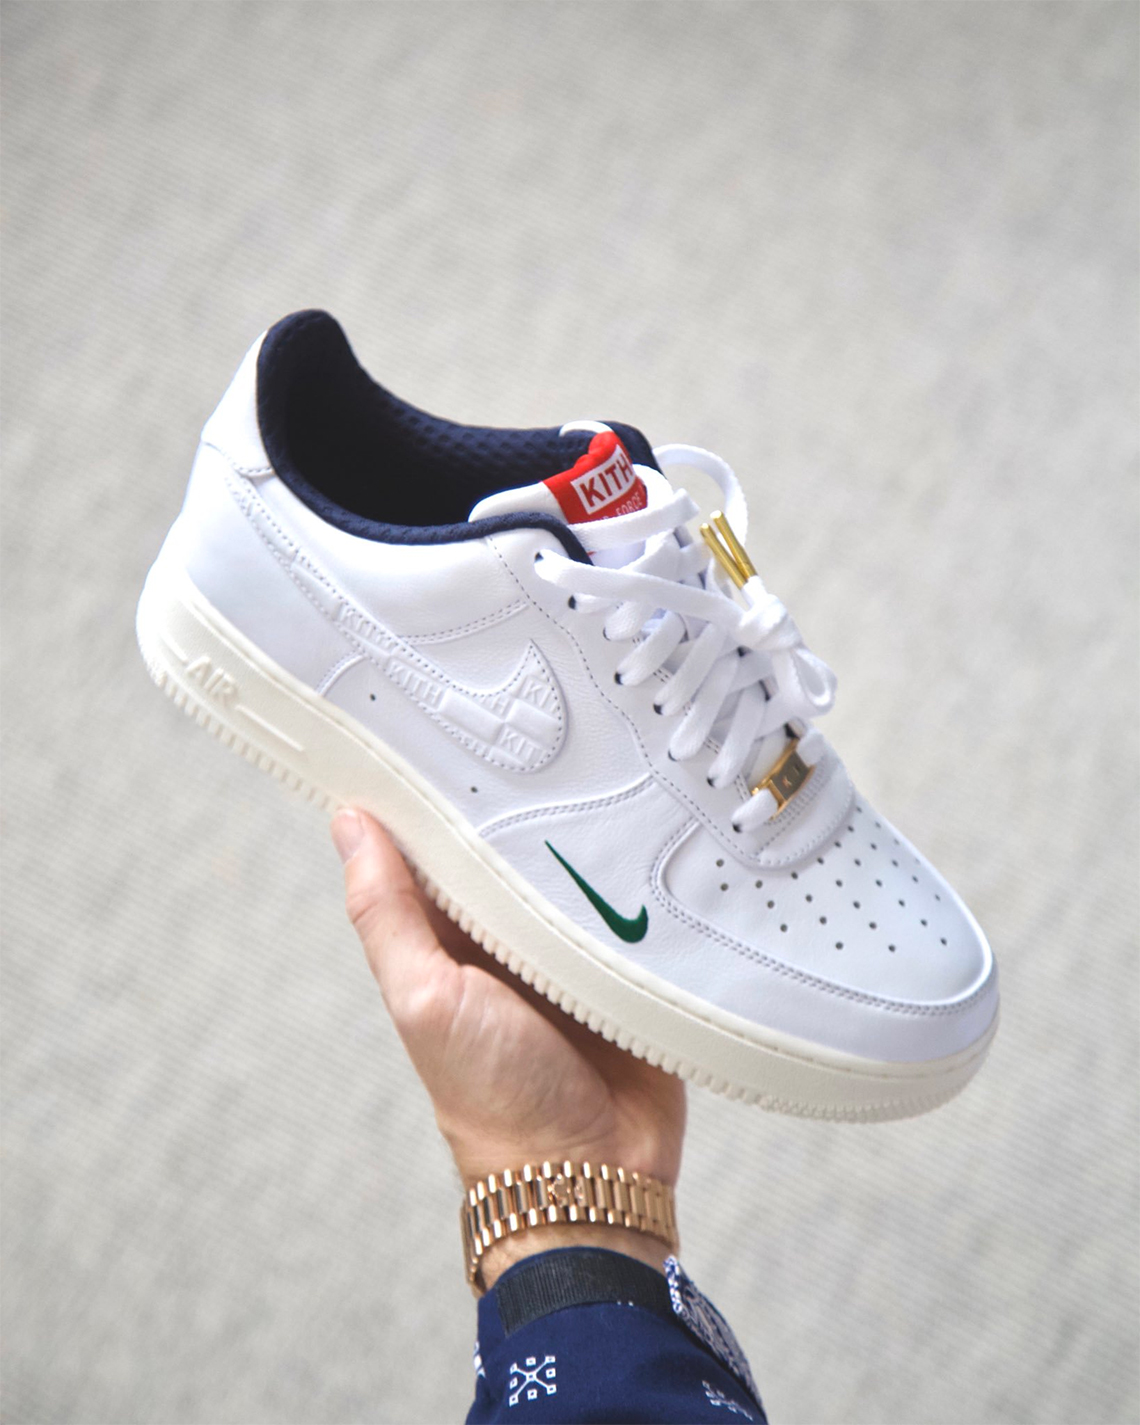 Kith x Nike Air Force 1 '07 Low WhiteBlue University Red